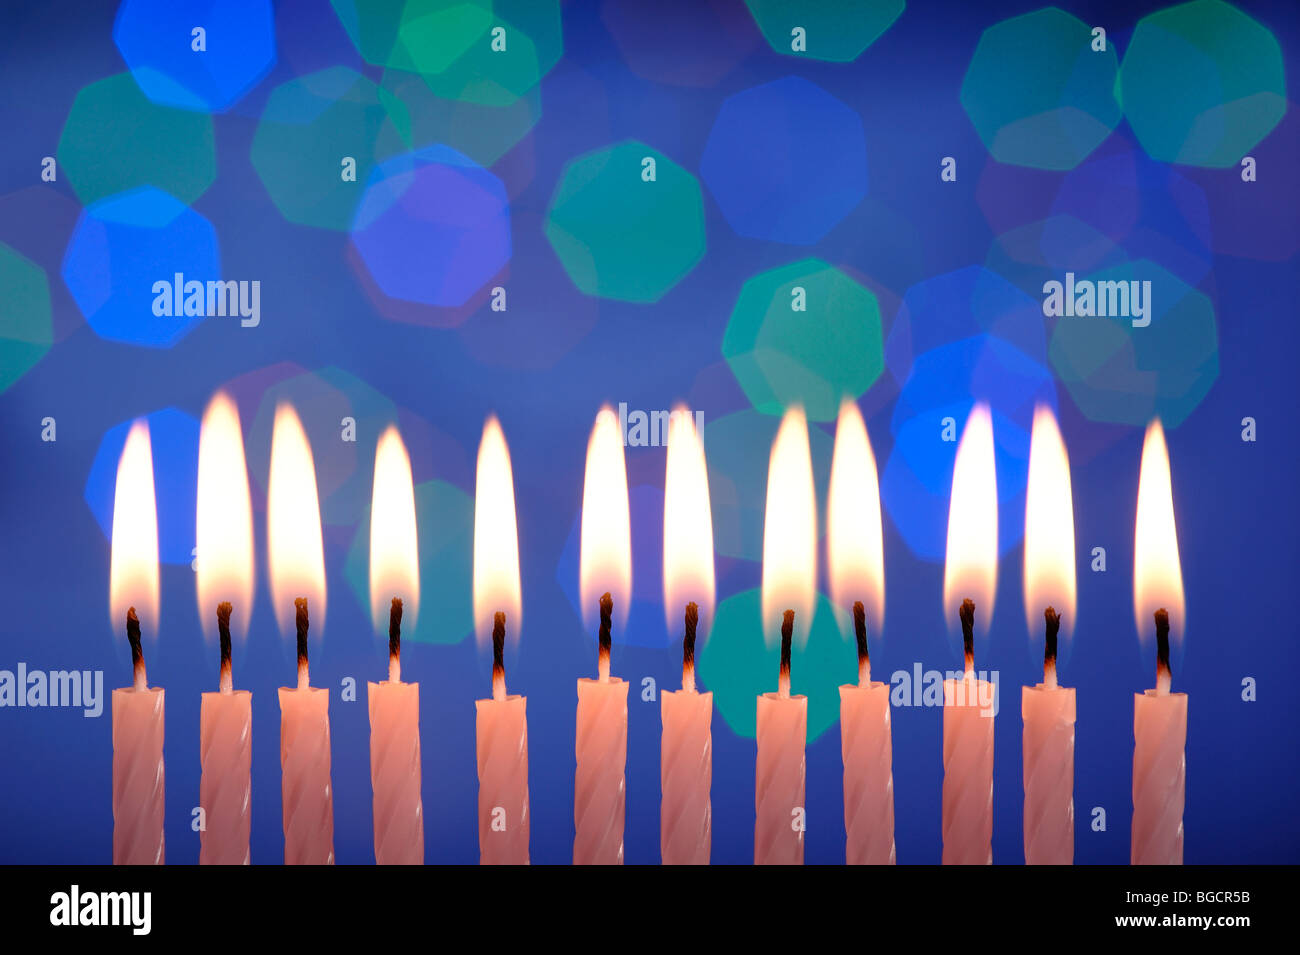 12 Birthday Candles Stock Photo Royalty Free Image